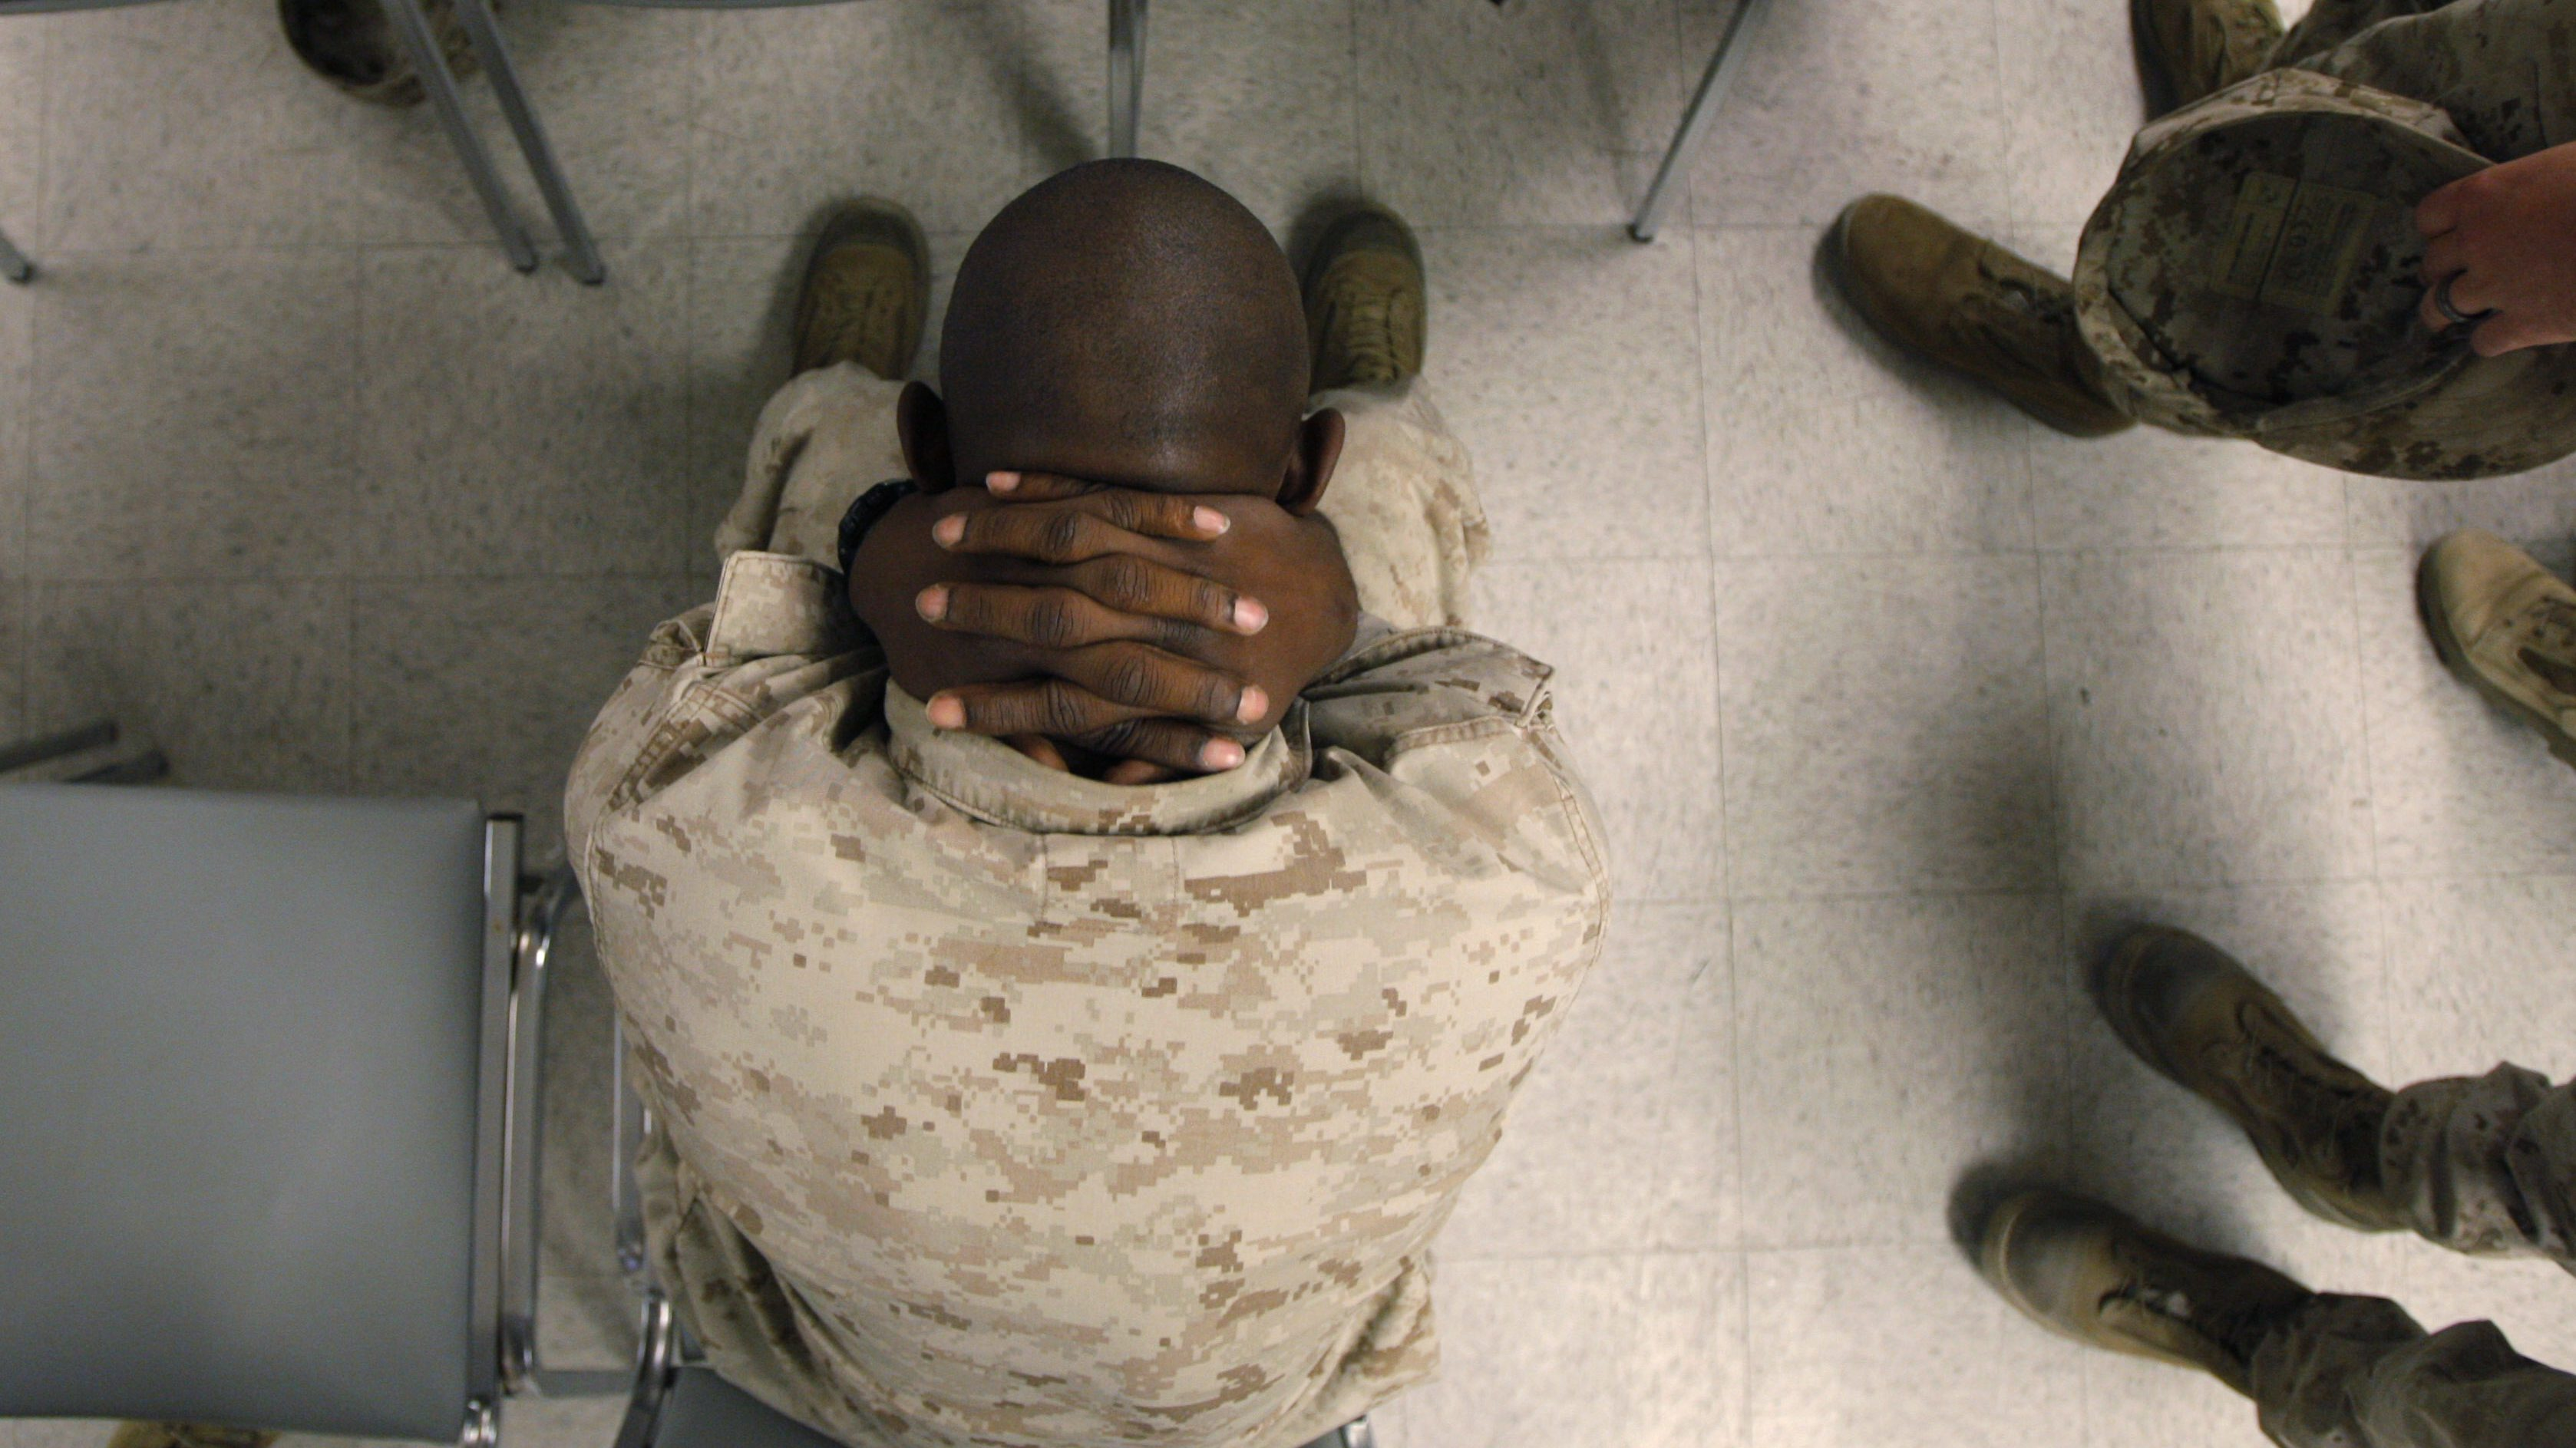 This Sept. 29, 2009 photo shows U.S. Marine Lance Cpl. Greg Rivers, 20, of Sylvester, Ga., holding his neck while waiting to take psychological tests at the Marine Corps Air Ground Combat Center in Twentynine Palms, Calif. The U.S. government is testing hundreds of Marines and soldiers before they ship out, in search of clues that might help predict who is most susceptible to post-traumatic stress disorder. (AP Photo/Jae C. Hong)